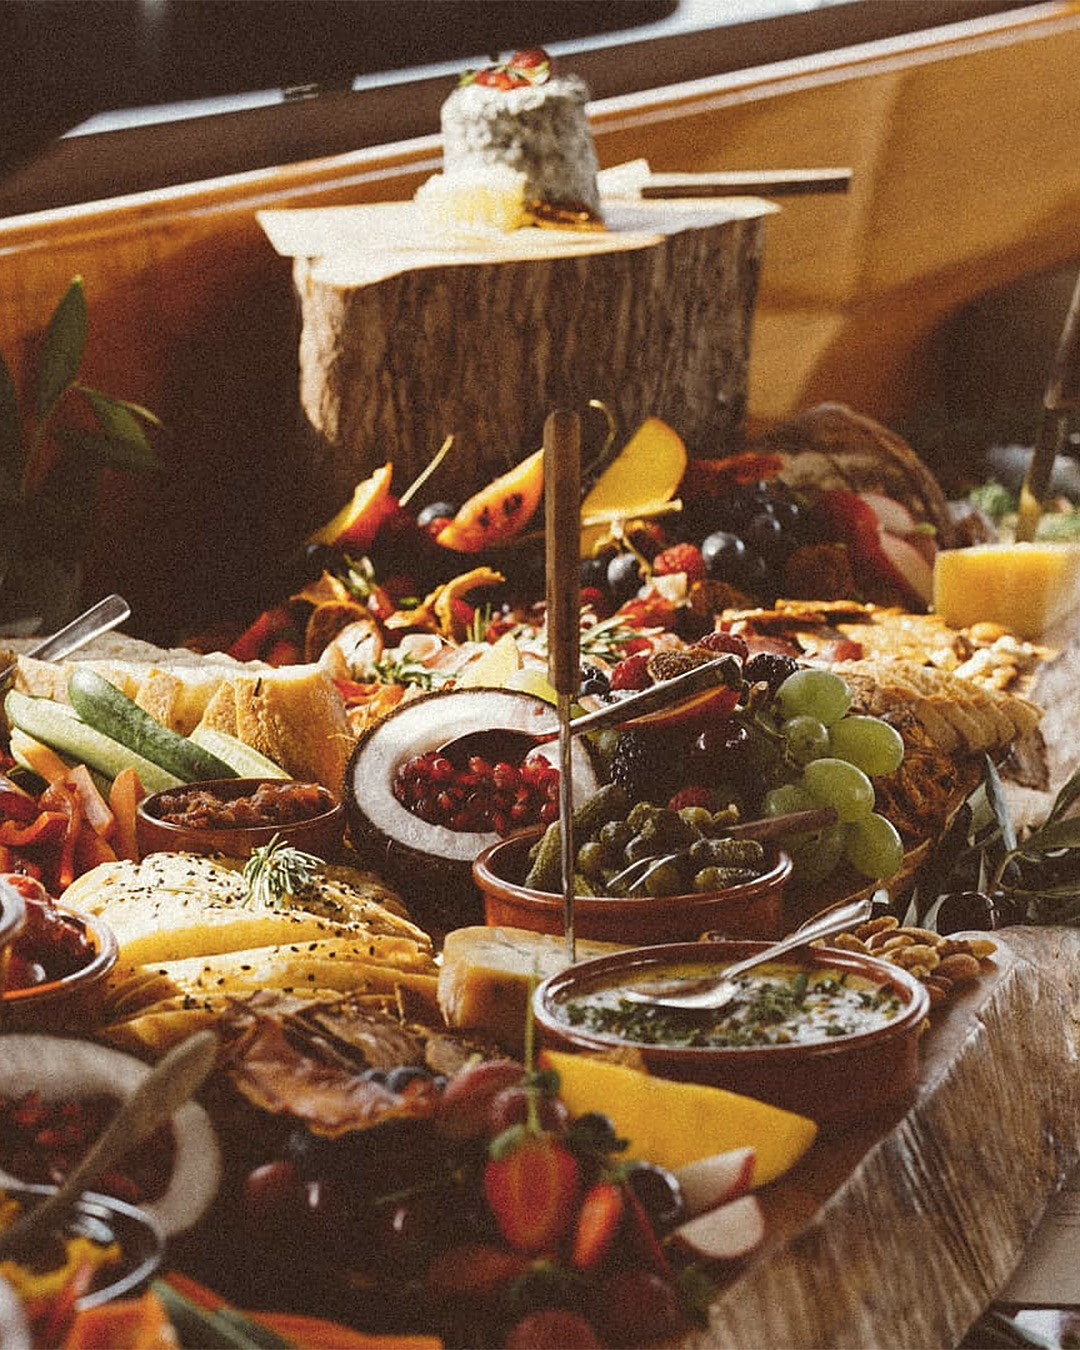 The grazing board piled high with all sorts of goodies from On Board Kitchen.